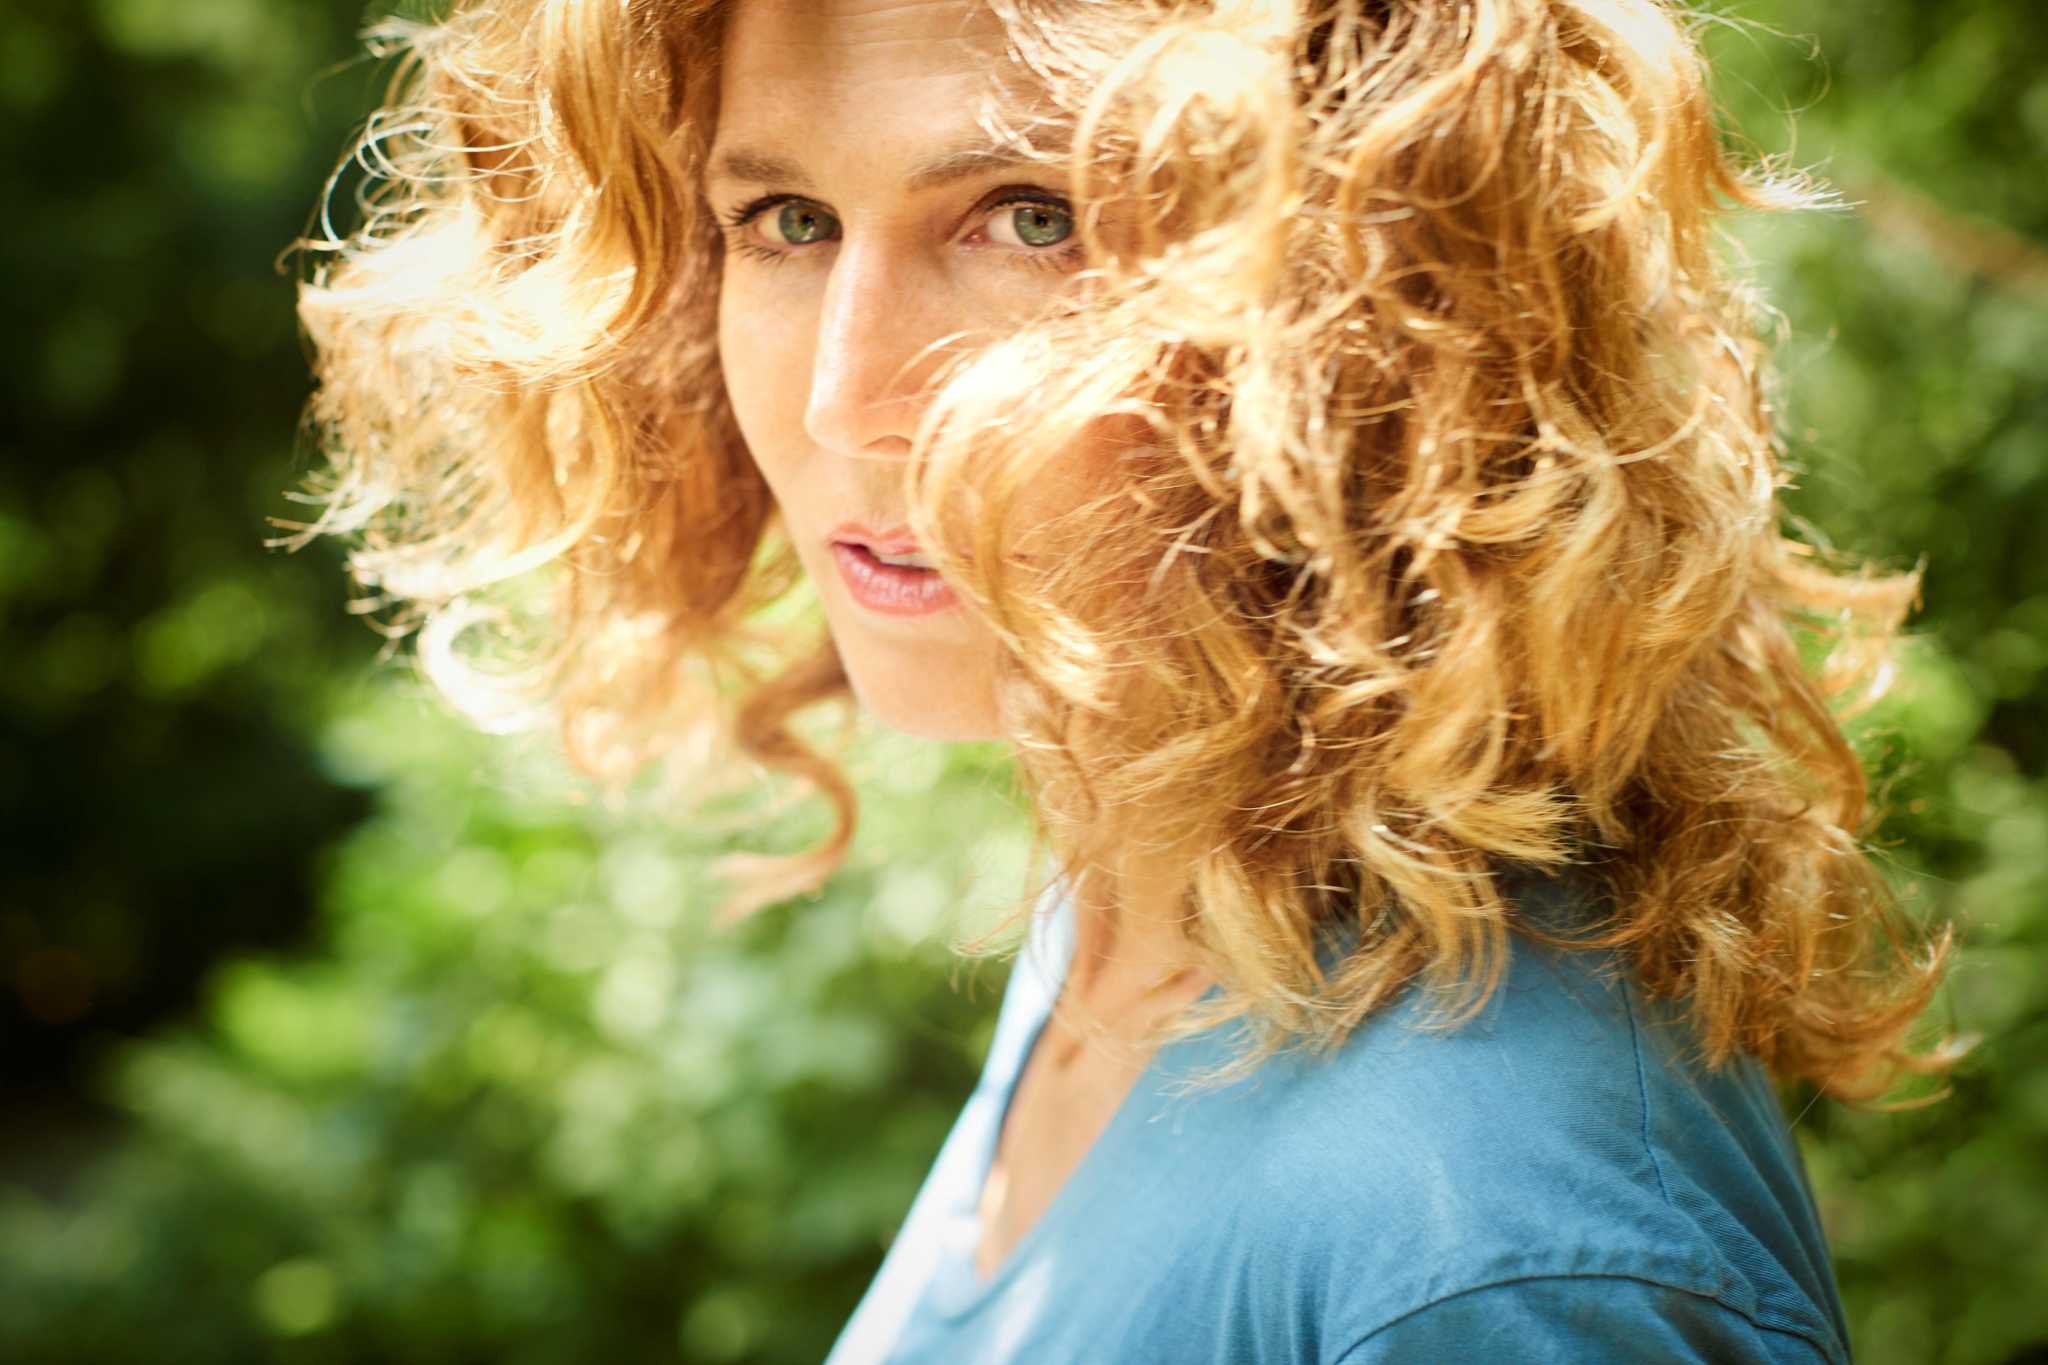 """'I go from flower to flower now': Sophie B. Hawkins talks about living life """"as a bee"""" during the pandemic"""